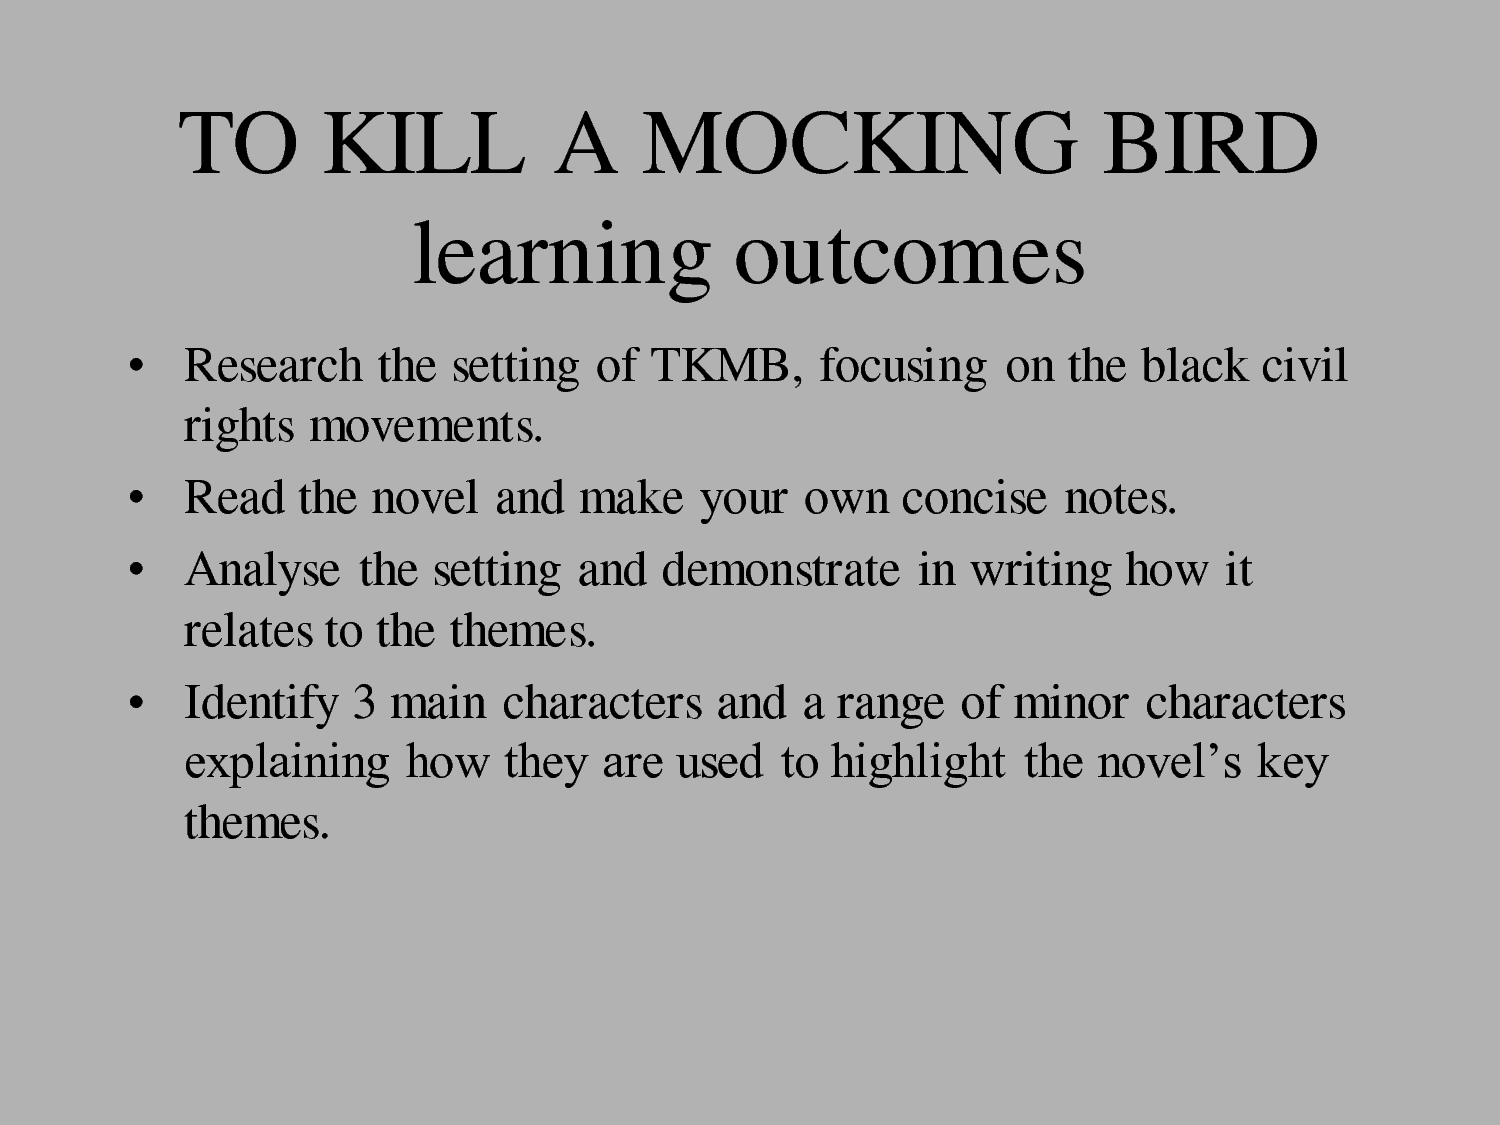 racism through the analysis of characterization and conflict in to kill a mockingbird a novel by har